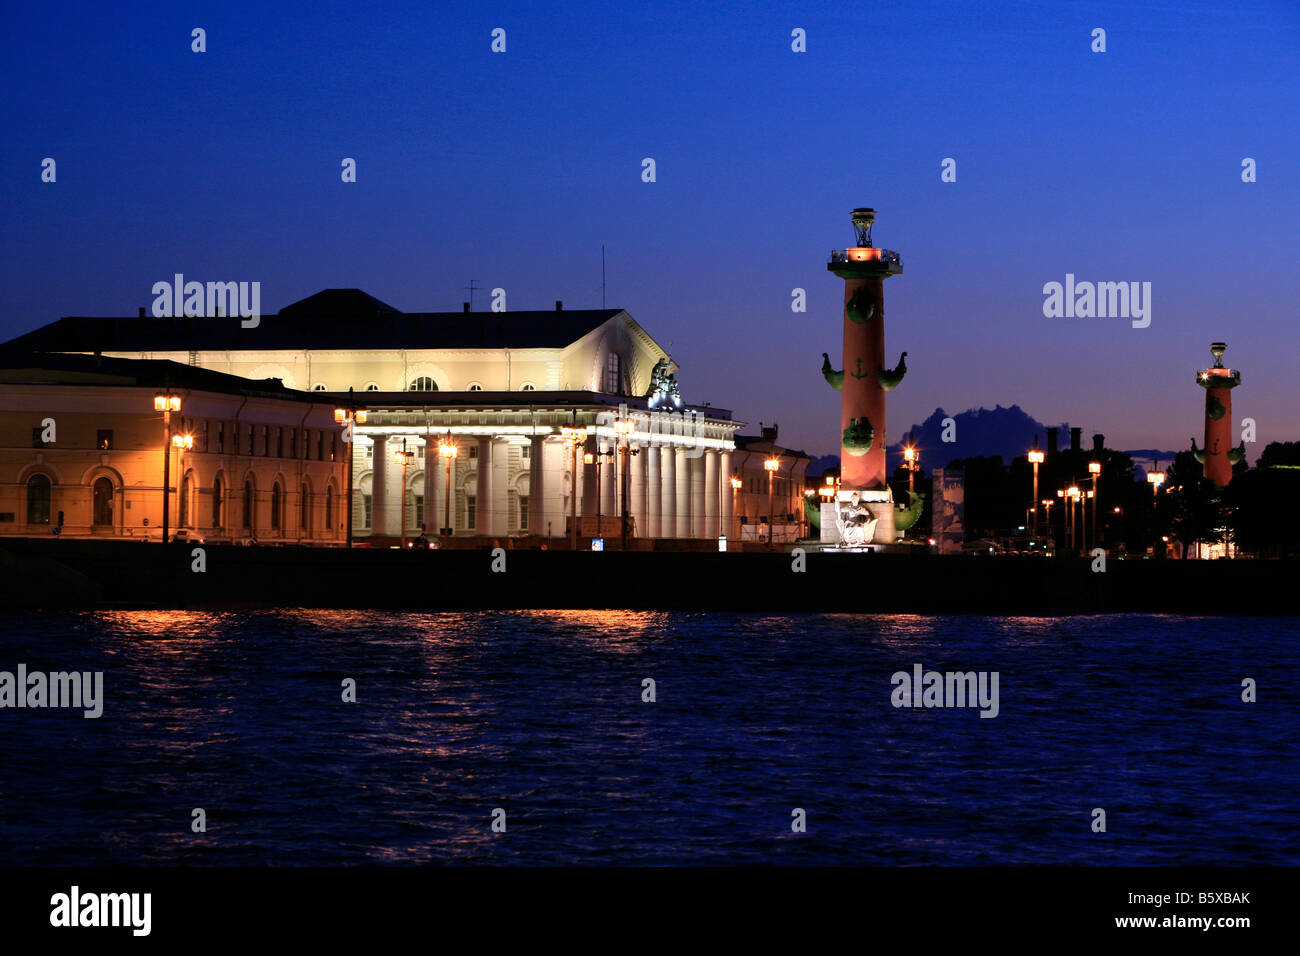 Facade of the 18th century Central Naval Museum during the White Nights in Saint Petersburg, Russia Stock Photo